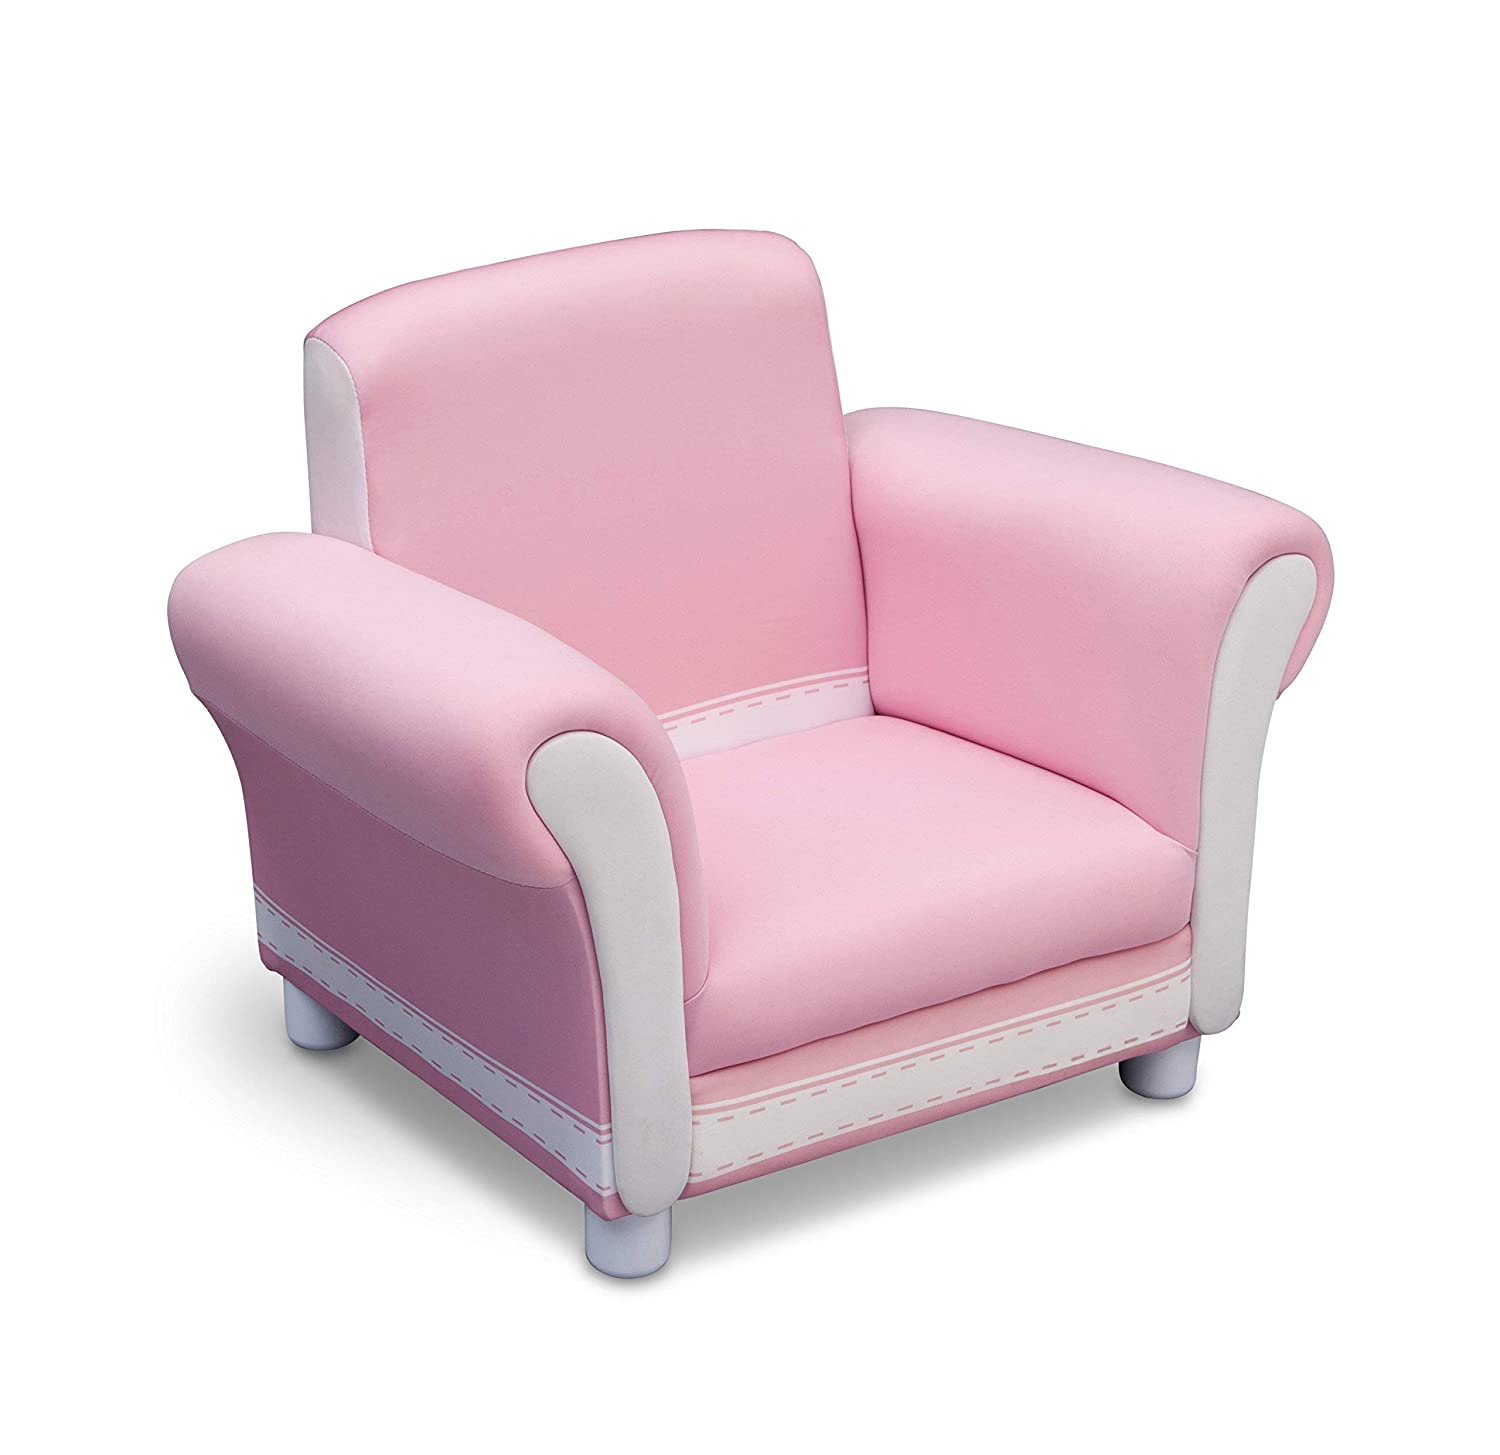 Terrific Delta Children Childrens Upholstered Chair Pink And White Pabps2019 Chair Design Images Pabps2019Com